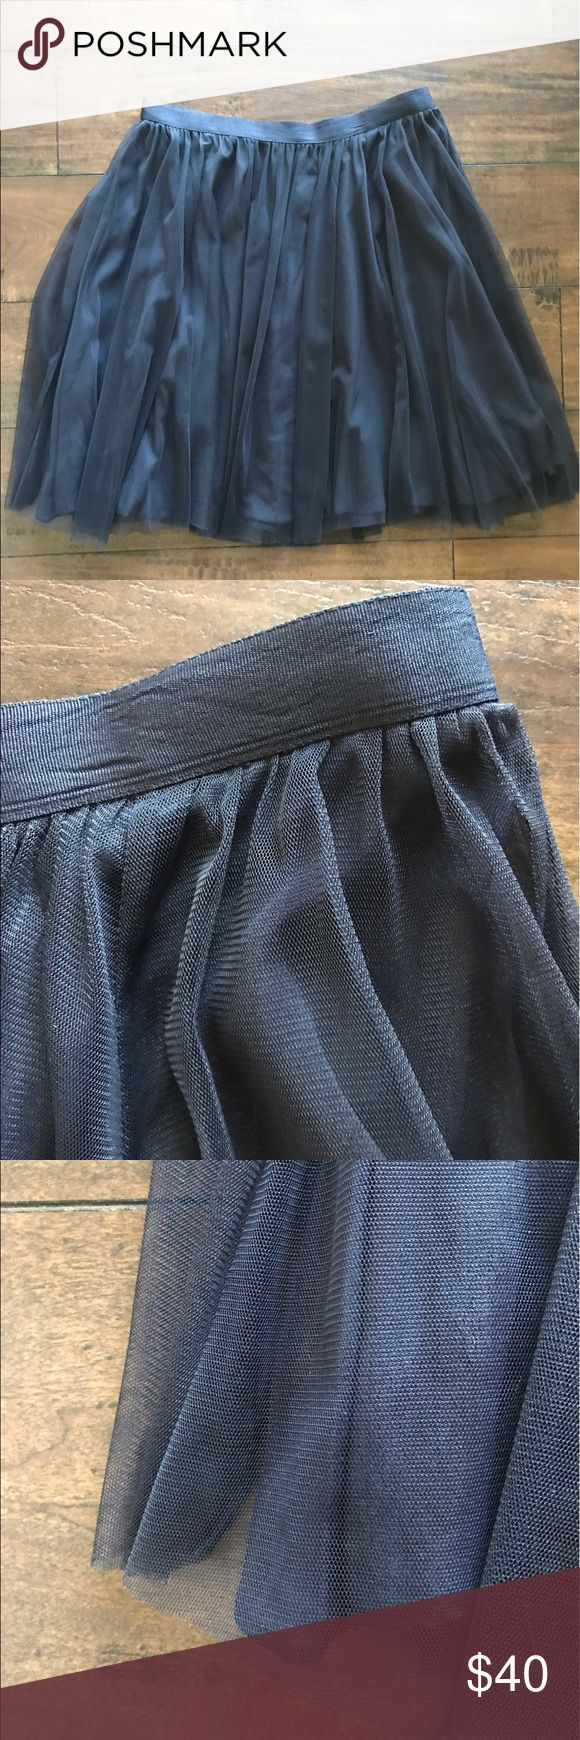 French Connection Navy Tulle Full Lined Skirt French Connection Navy Tulle Full Skirt   Grosgrain Ribbon Waist  Invisible Back Zipper   Lined  Size 8                                                                             Waist 30 and Length 21.5  Shell 100% Polyamide/Nylon  Lining 100% Viscose/Rayon  Dry Clean Only French Connection Skirts A-Line or Full